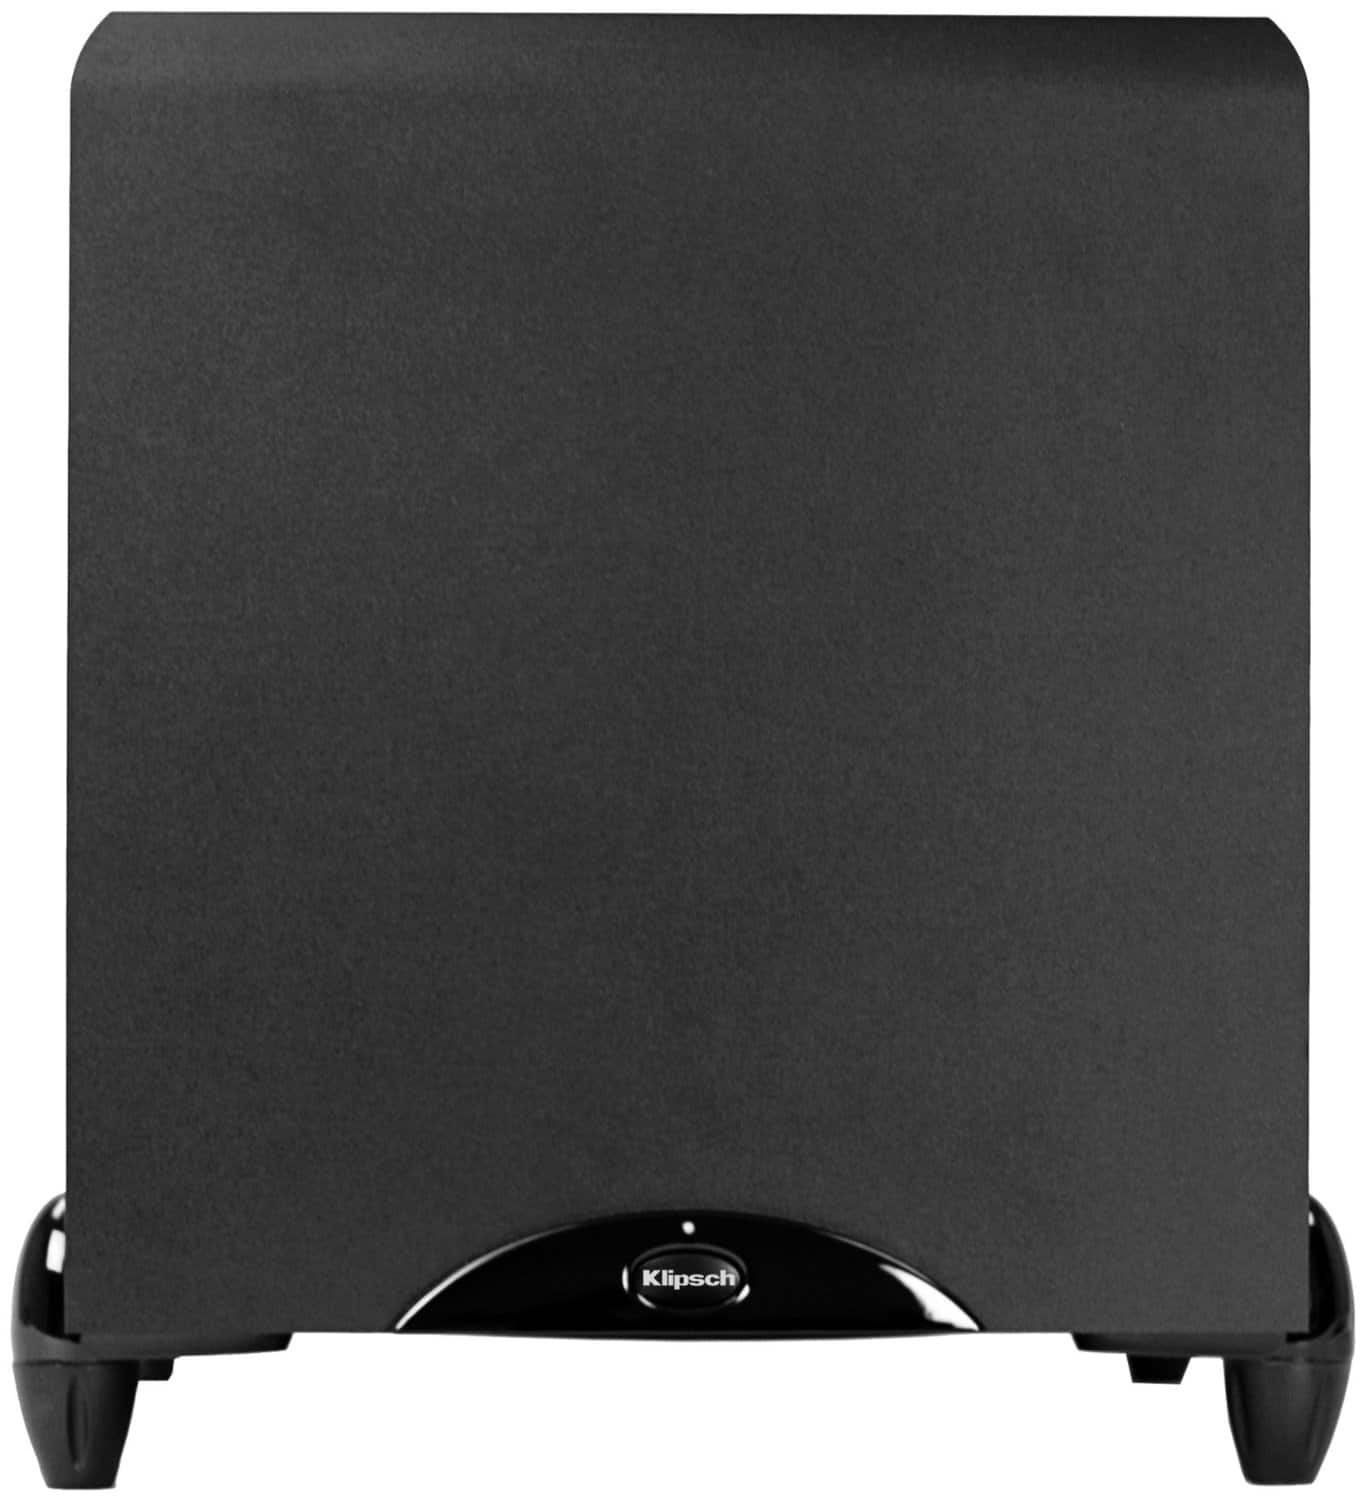 Klipsch Sub-12HG Synergy Series 12-Inch 300-Watt Subwoofer with High Gloss Trim $199 Amazon